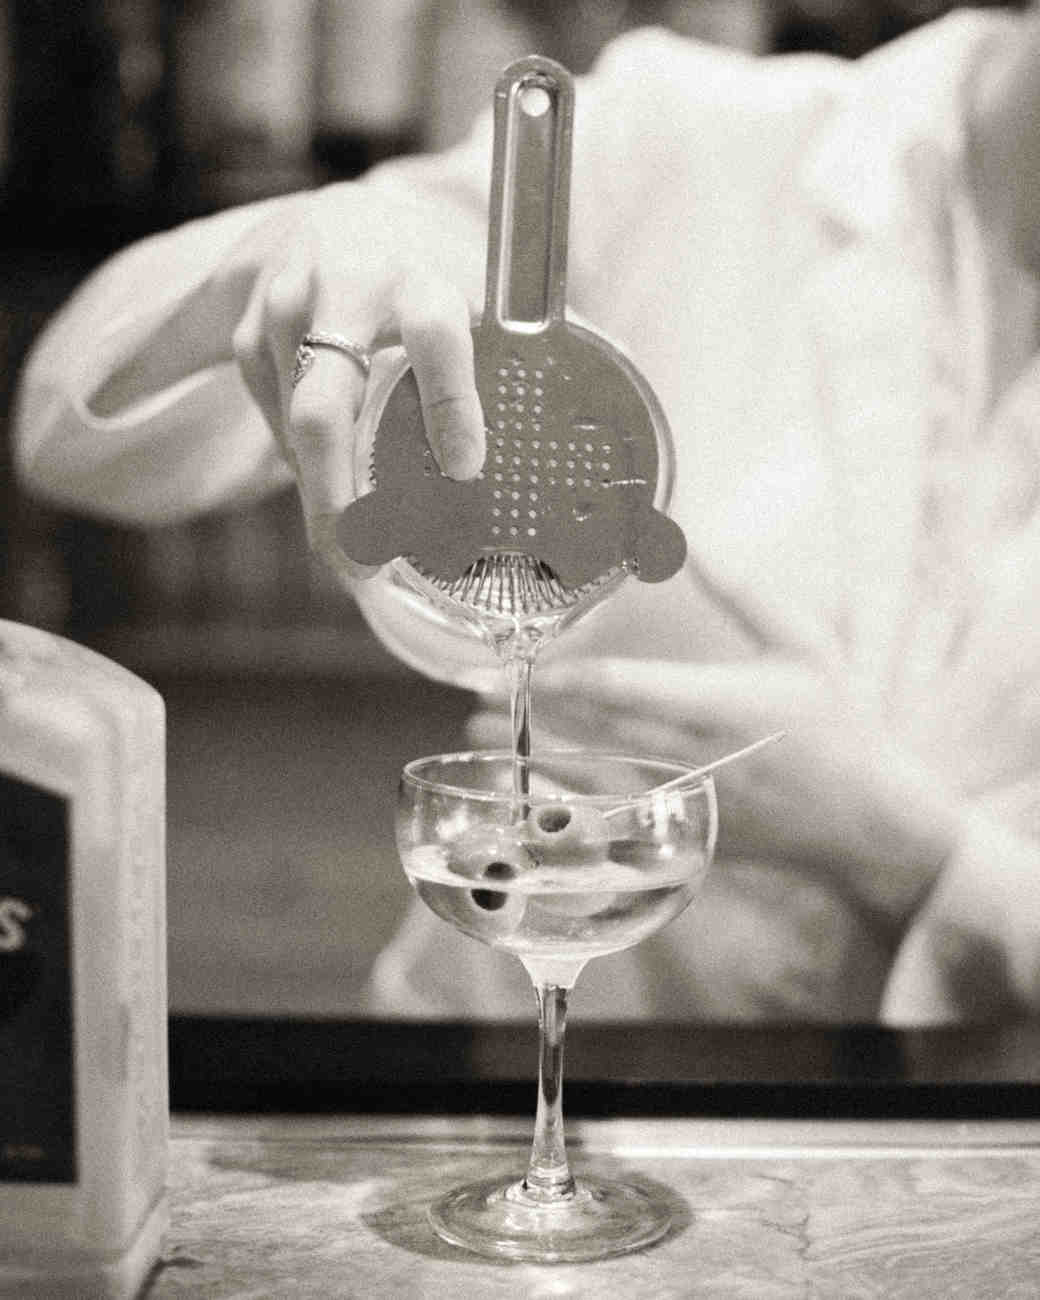 m-expert-advice-mix-up-cocktails-gettyimages-595914767-s112893.jpg